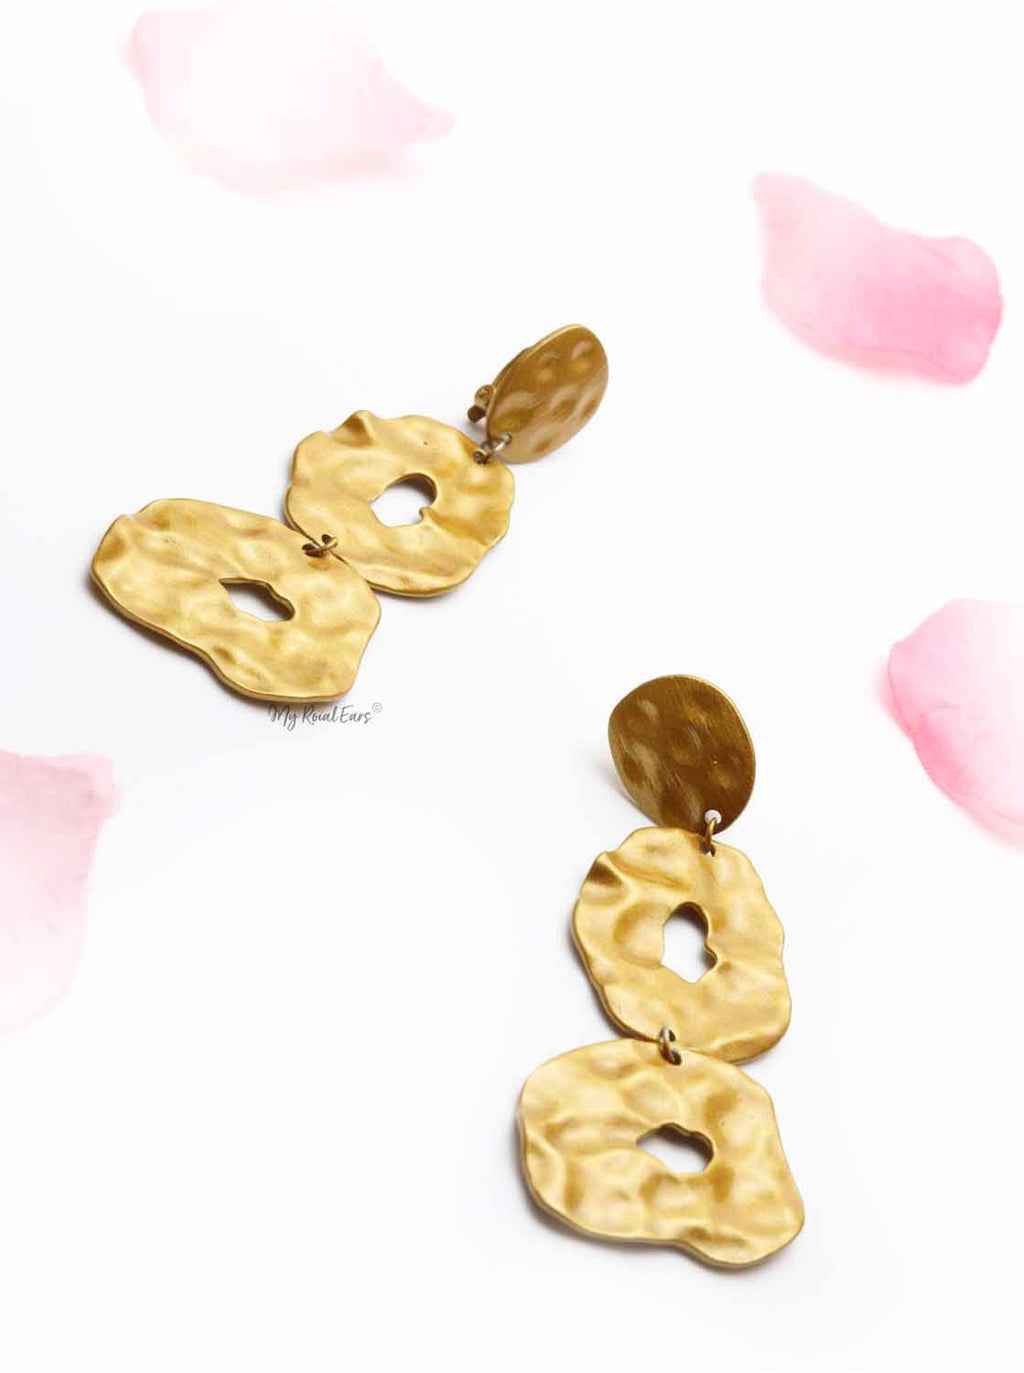 Ipomoea Indica- clipon gold statement drop earrings - My Roial Ears LTD